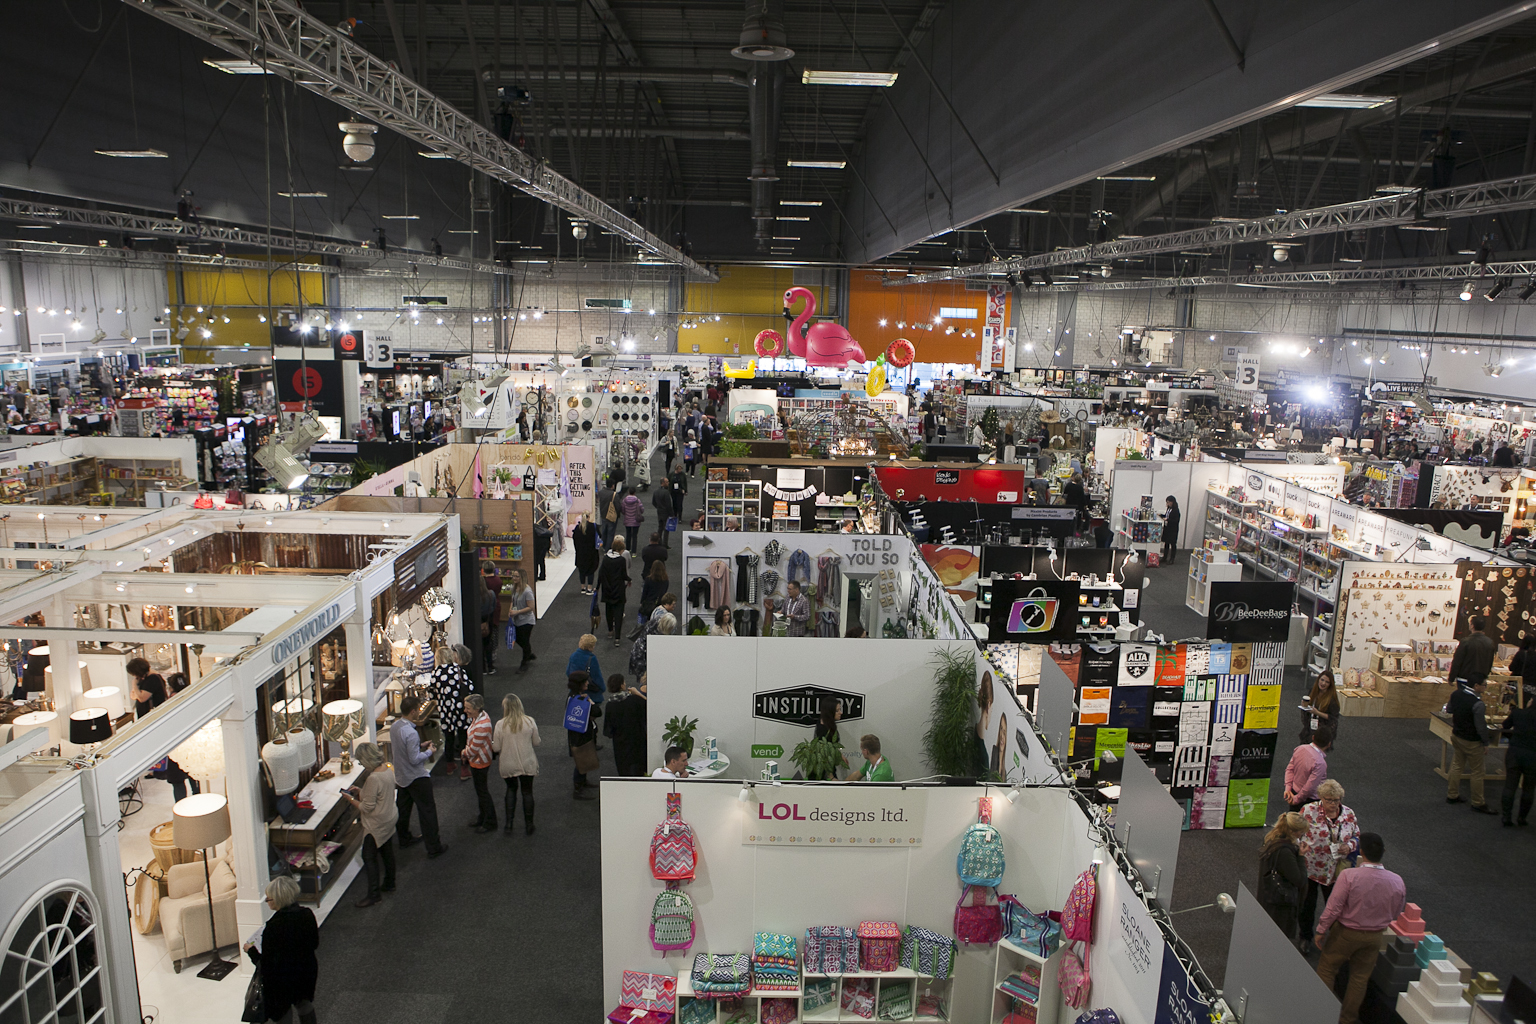 Image courtesy of NZ Gift Fairs